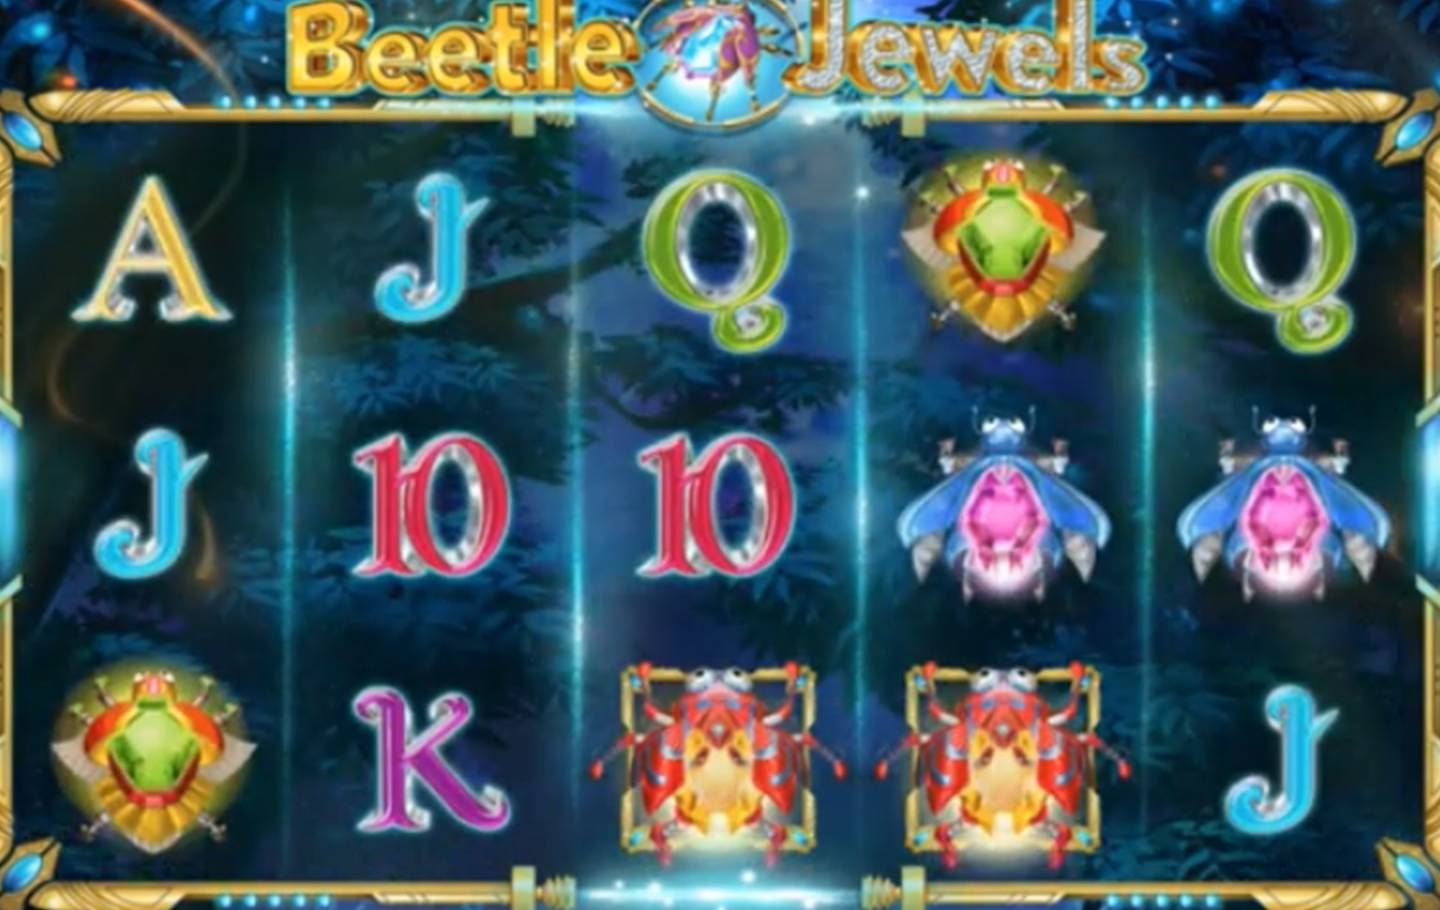 Beetle Jewels